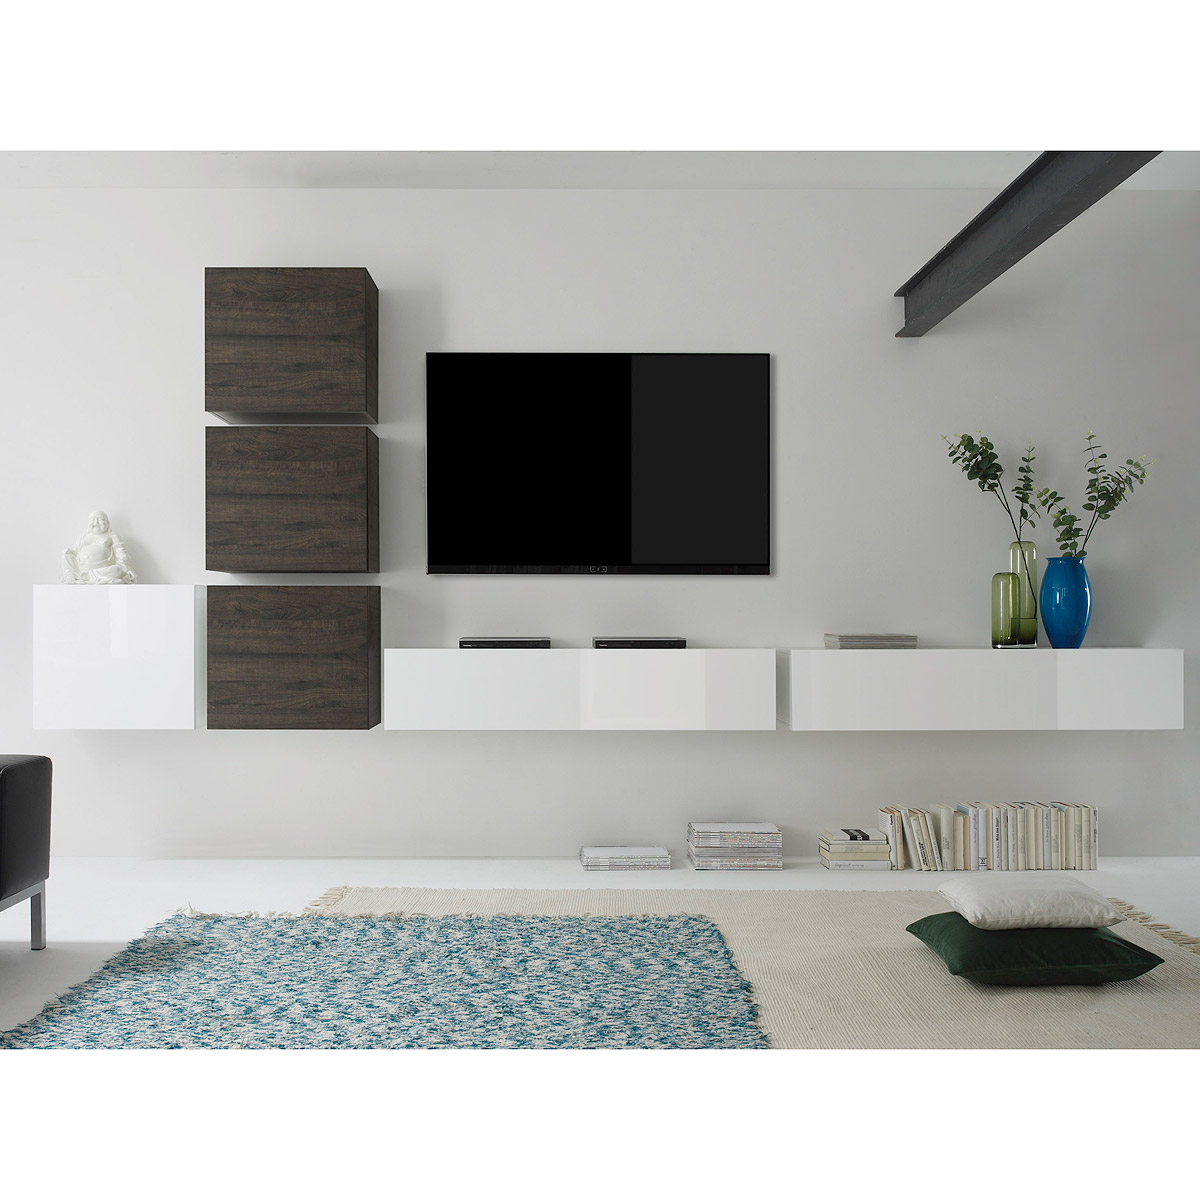 wohnwand cube kombi 7 anbauwand eiche wenge und wei lack eur 547 95 picclick de. Black Bedroom Furniture Sets. Home Design Ideas